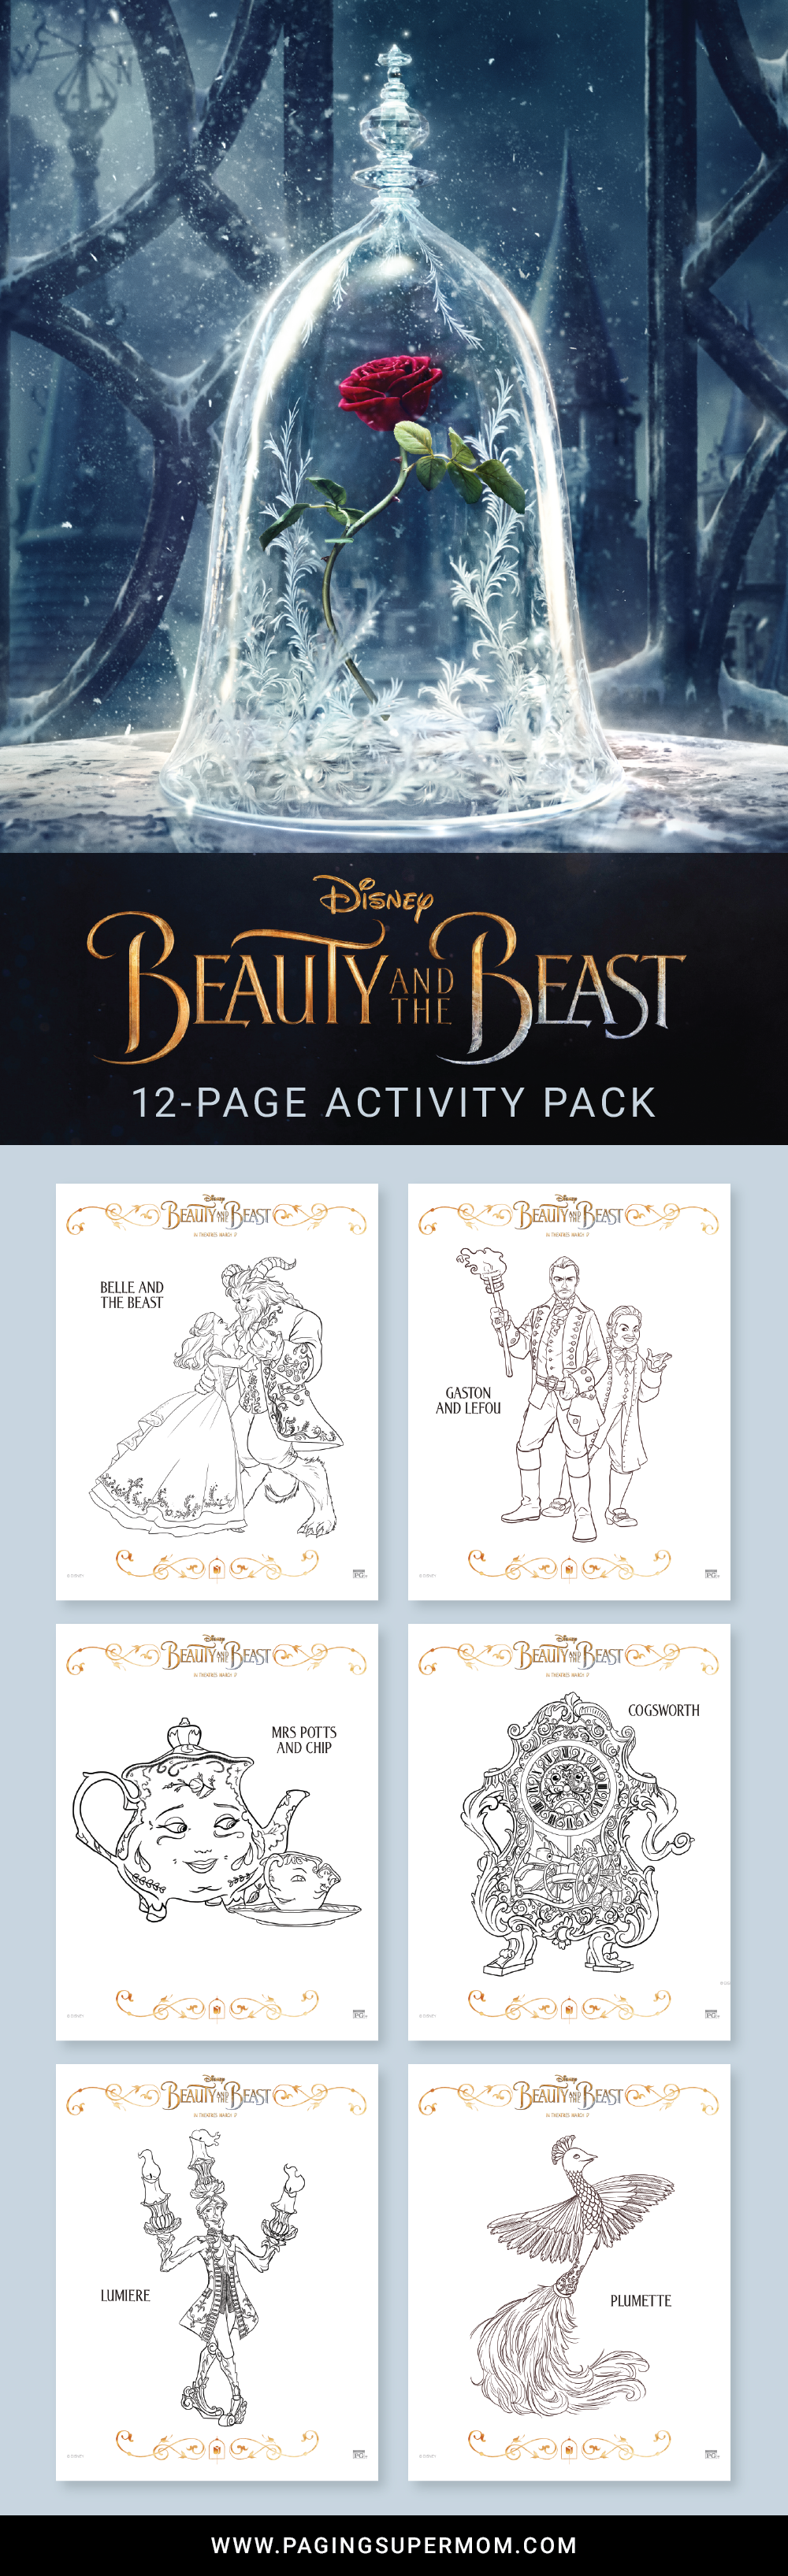 Is the New Beauty the Beast Too Scary Should I take my young kids